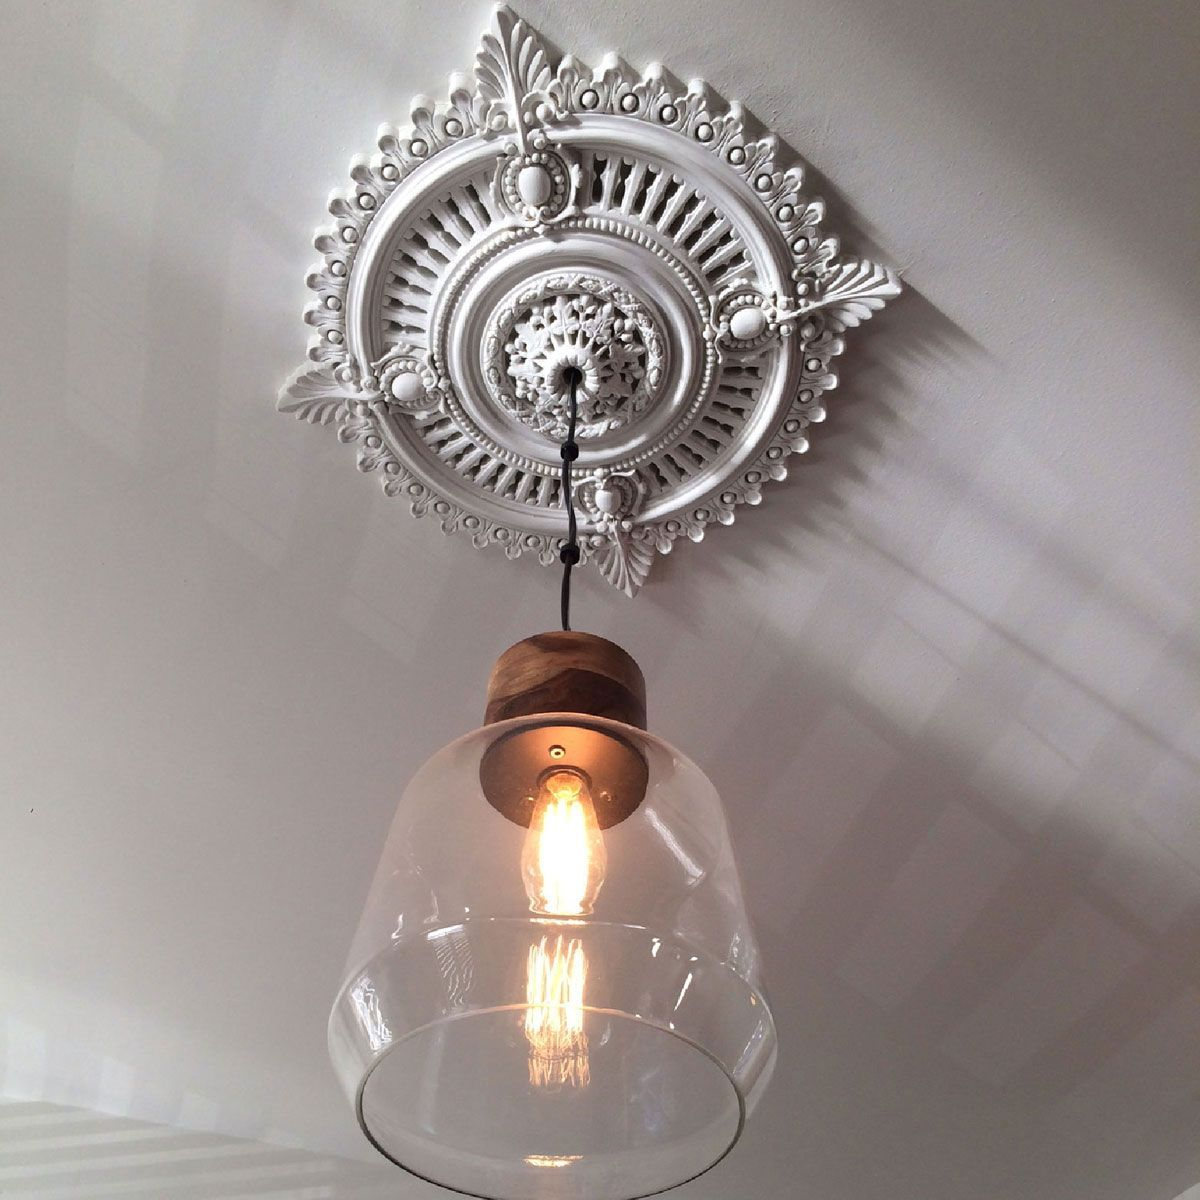 Ceiling Medallions With Pendant Lighting Ceiling Medallions Ceiling Lights Glass Pendant Light